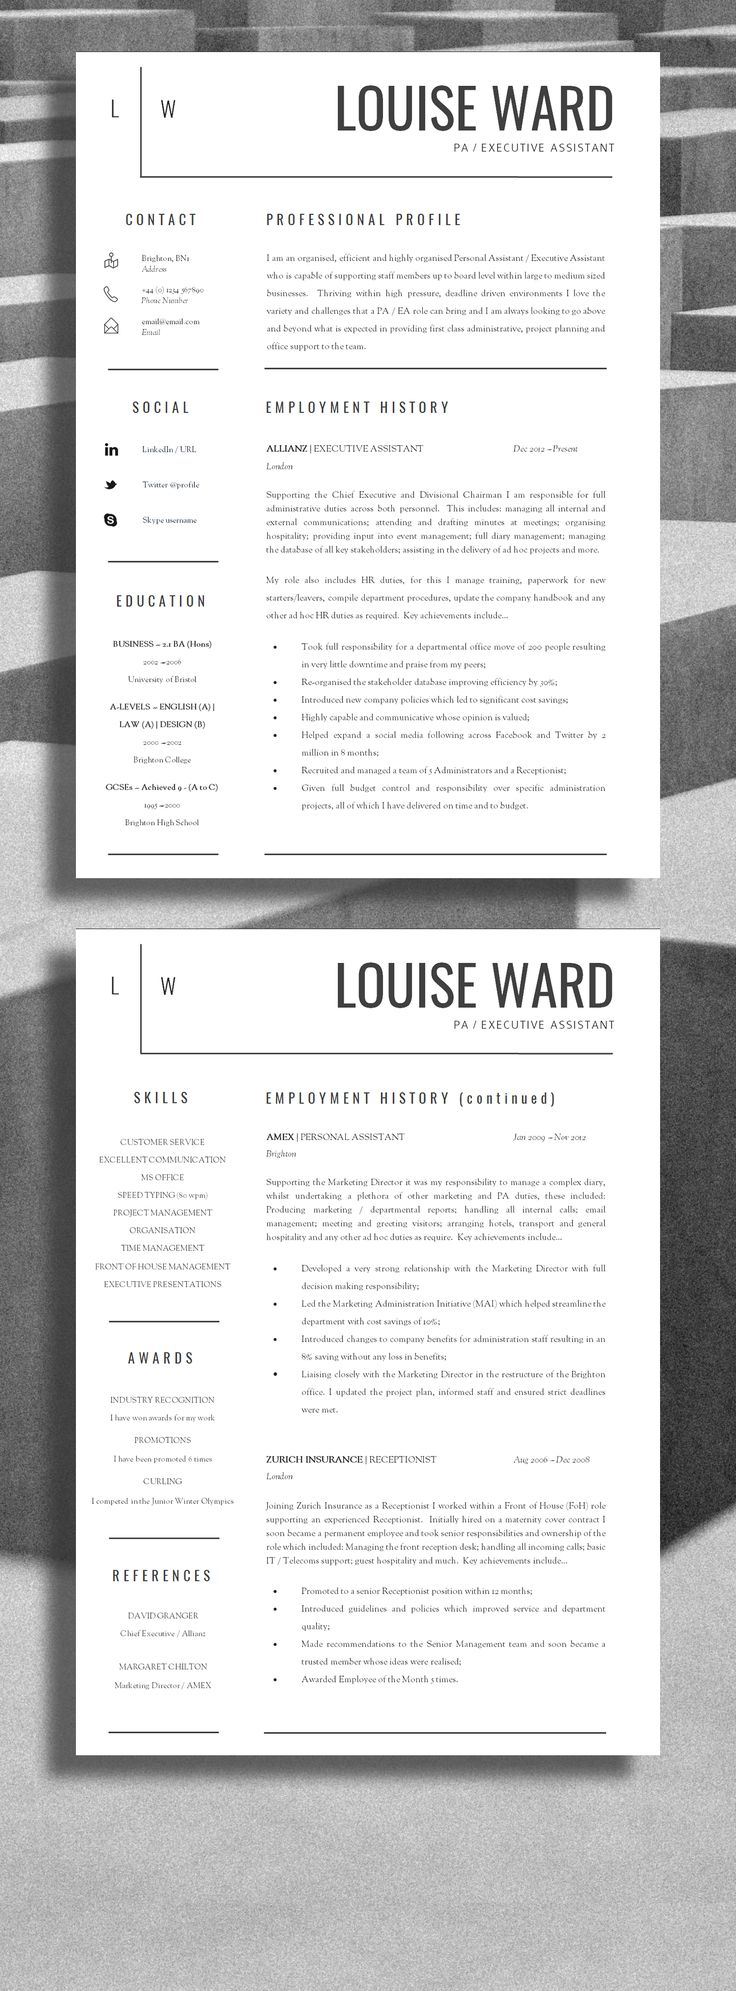 Best Resume Images On   Resume Template Download Free